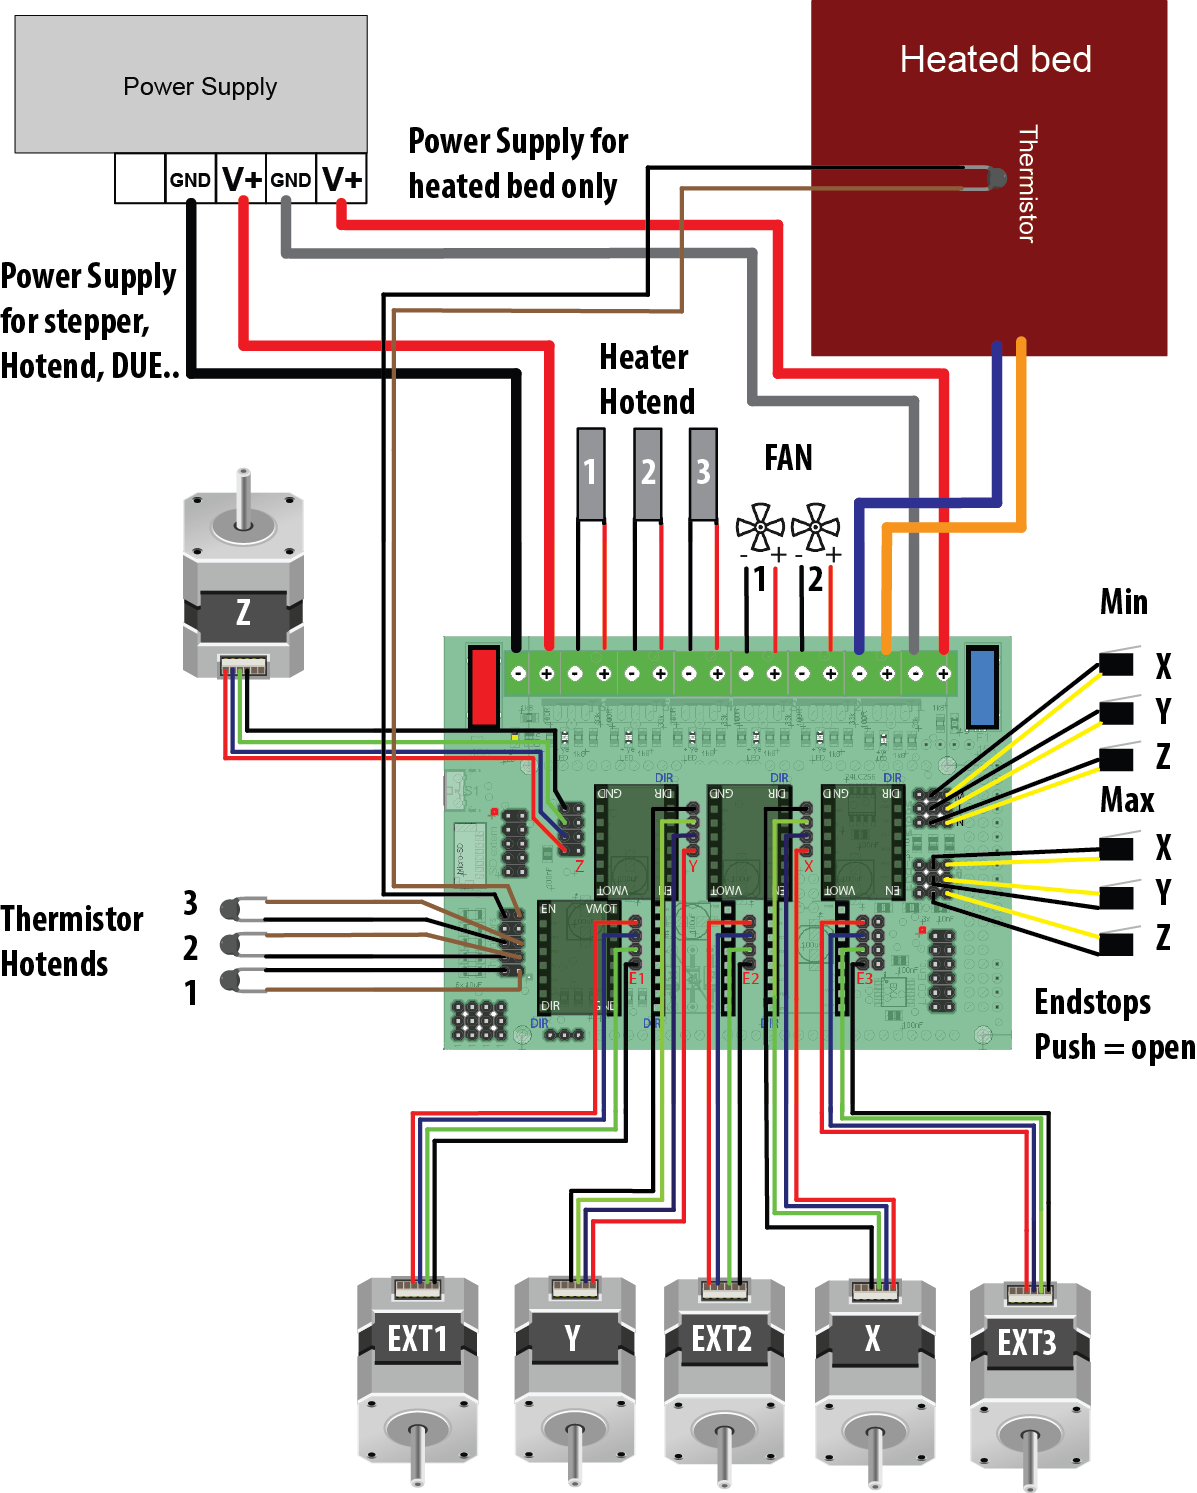 Sd Phase Motor Wiring Diagram on 3 phase motor windings, 3 phase single line diagram, 3 phase water heater wiring diagram, 3 phase subpanel, basic electrical schematic diagrams, 3 phase motor schematic, 3 phase squirrel cage induction motor, 3 phase plug, 3 phase electrical meters, 3 phase motor repair, 3 phase motor troubleshooting guide, 3 phase outlet wiring diagram, 3 phase motor testing, 3 phase stepper, baldor ac motor diagrams, 3 phase to 1 phase wiring diagram, three-phase transformer banks diagrams, 3 phase motor starter, 3 phase motor speed controller, 3 phase to single phase wiring diagram,